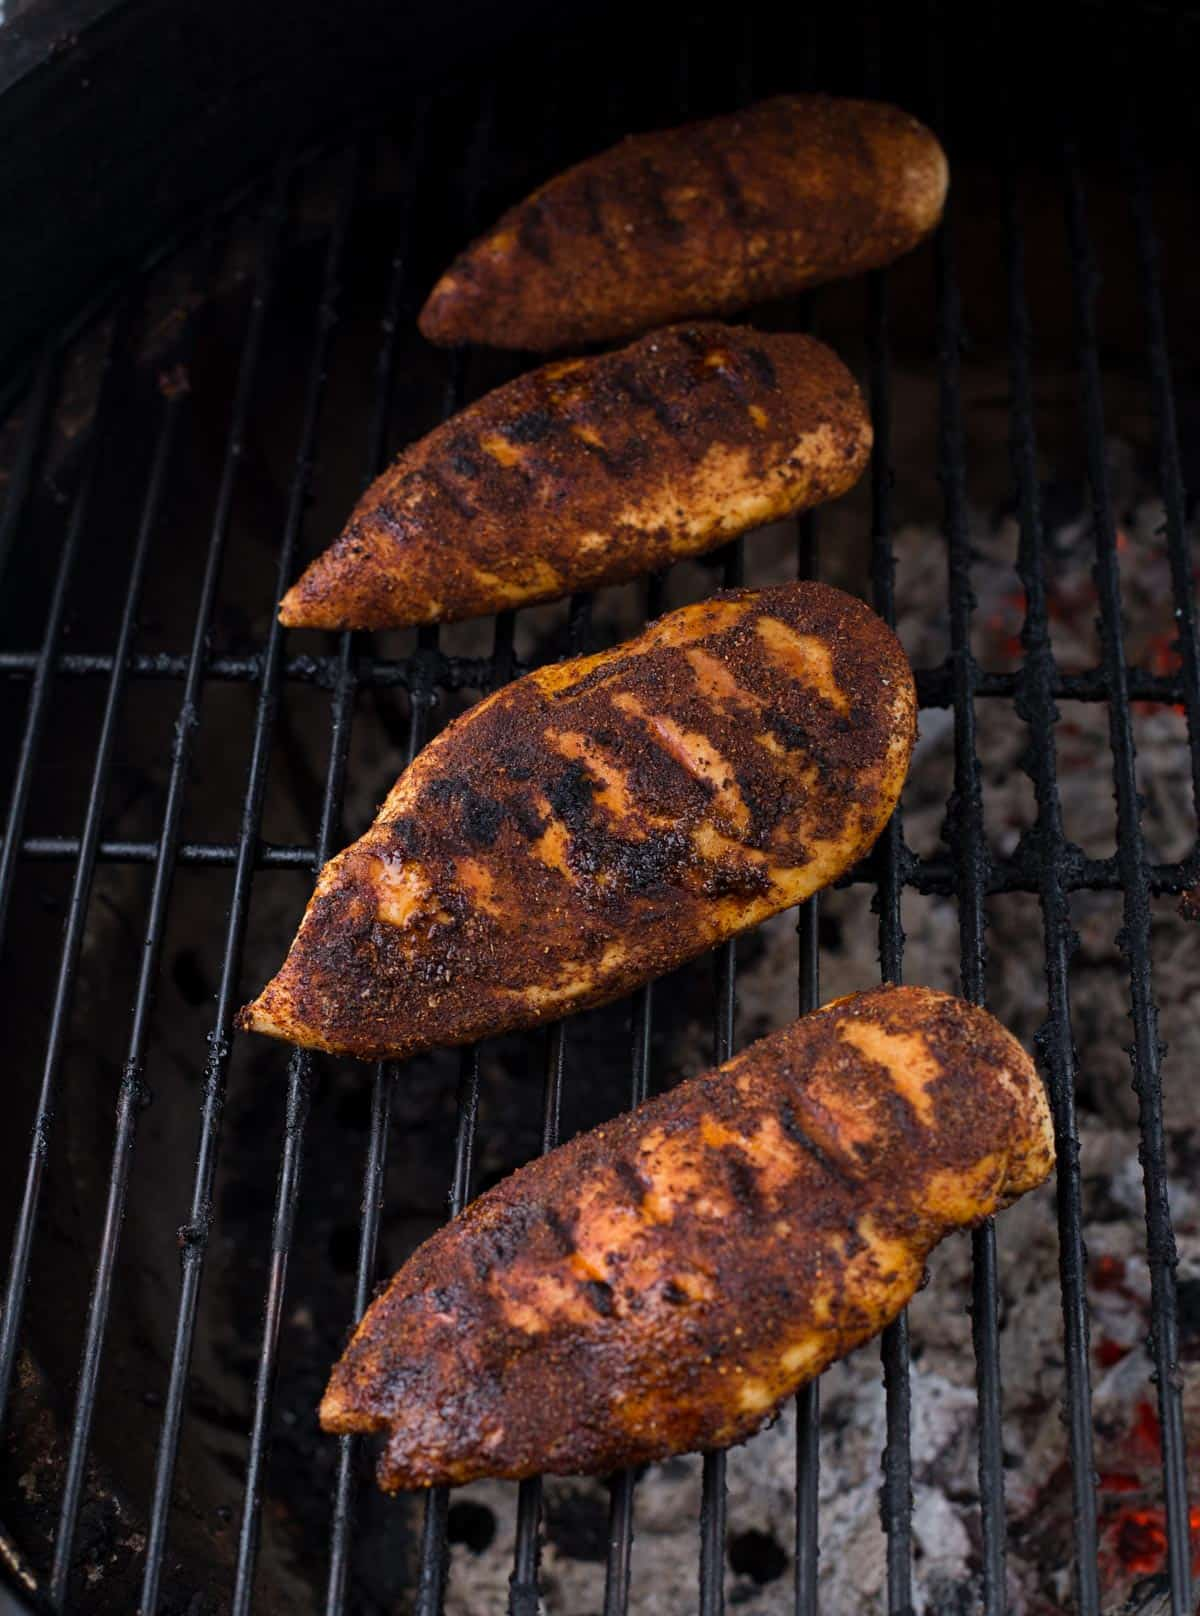 Blackened Chicken Breasts on the grill